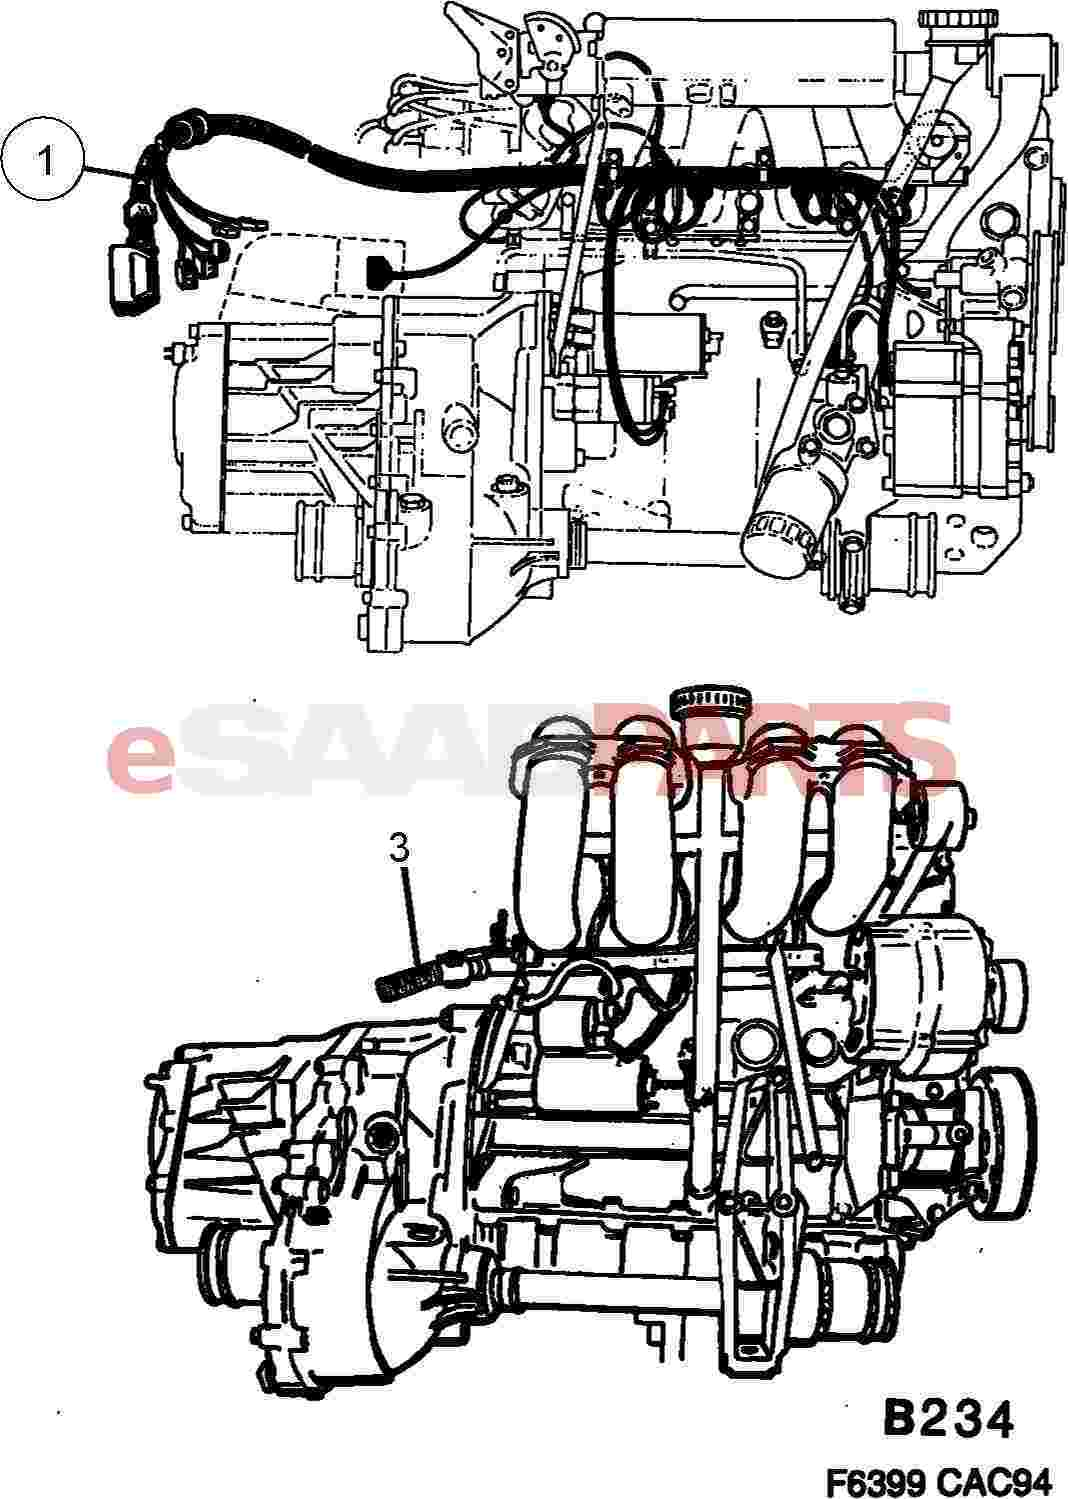 4535662  saab cable harness